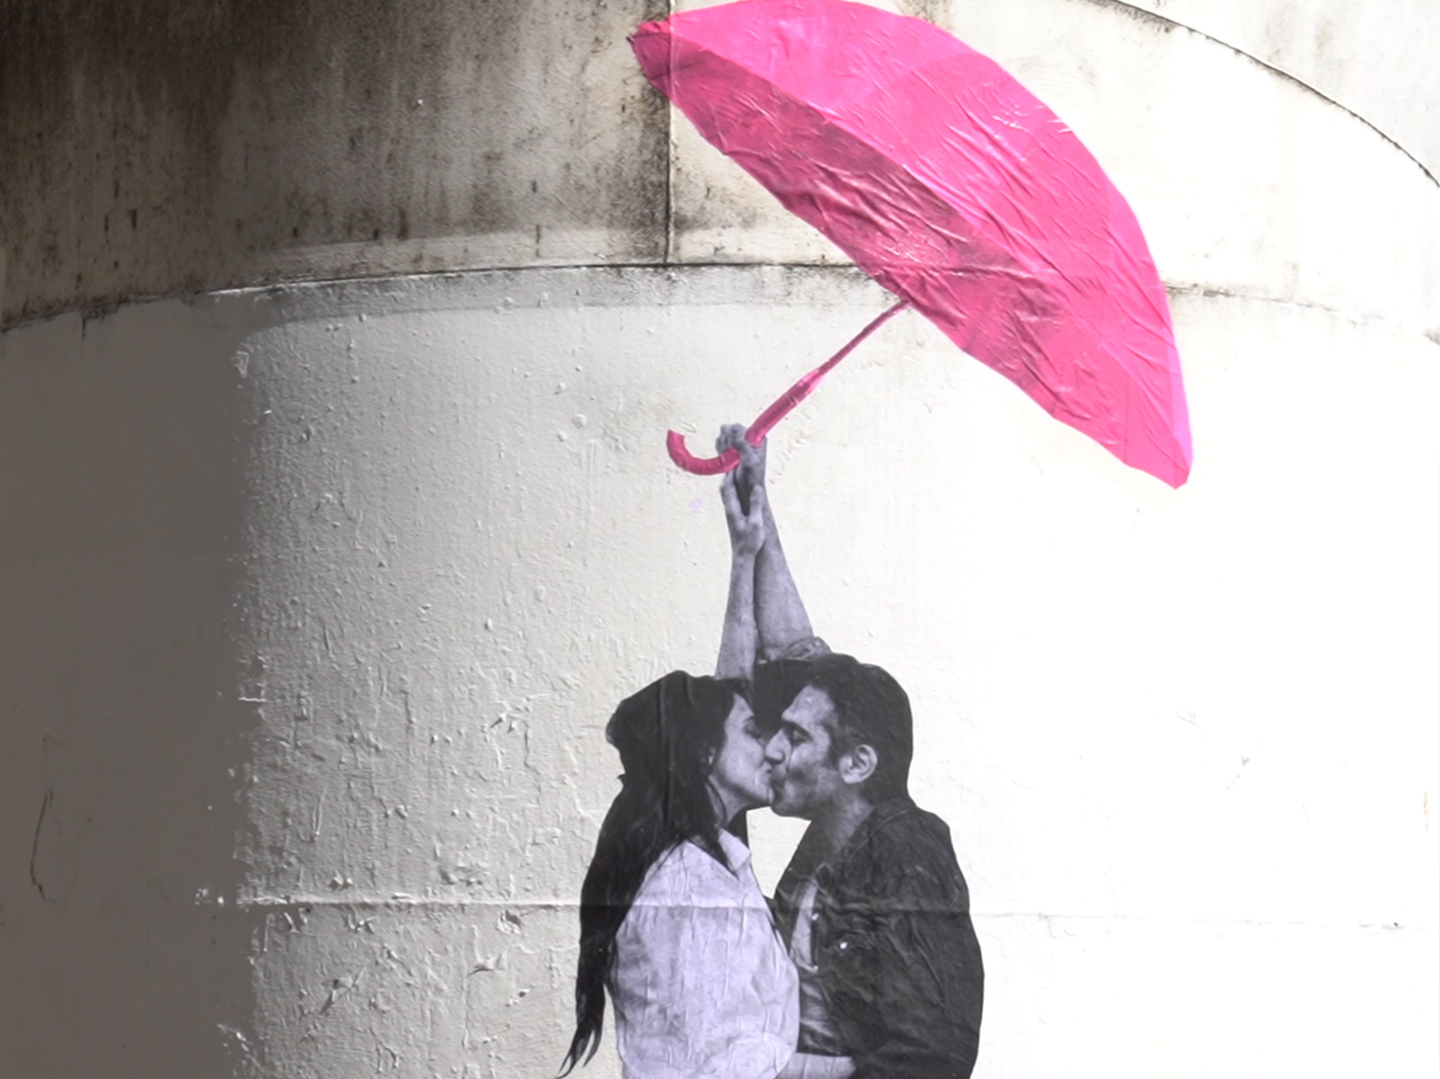 Street art collectif Le Mouvement collage photos parapluie